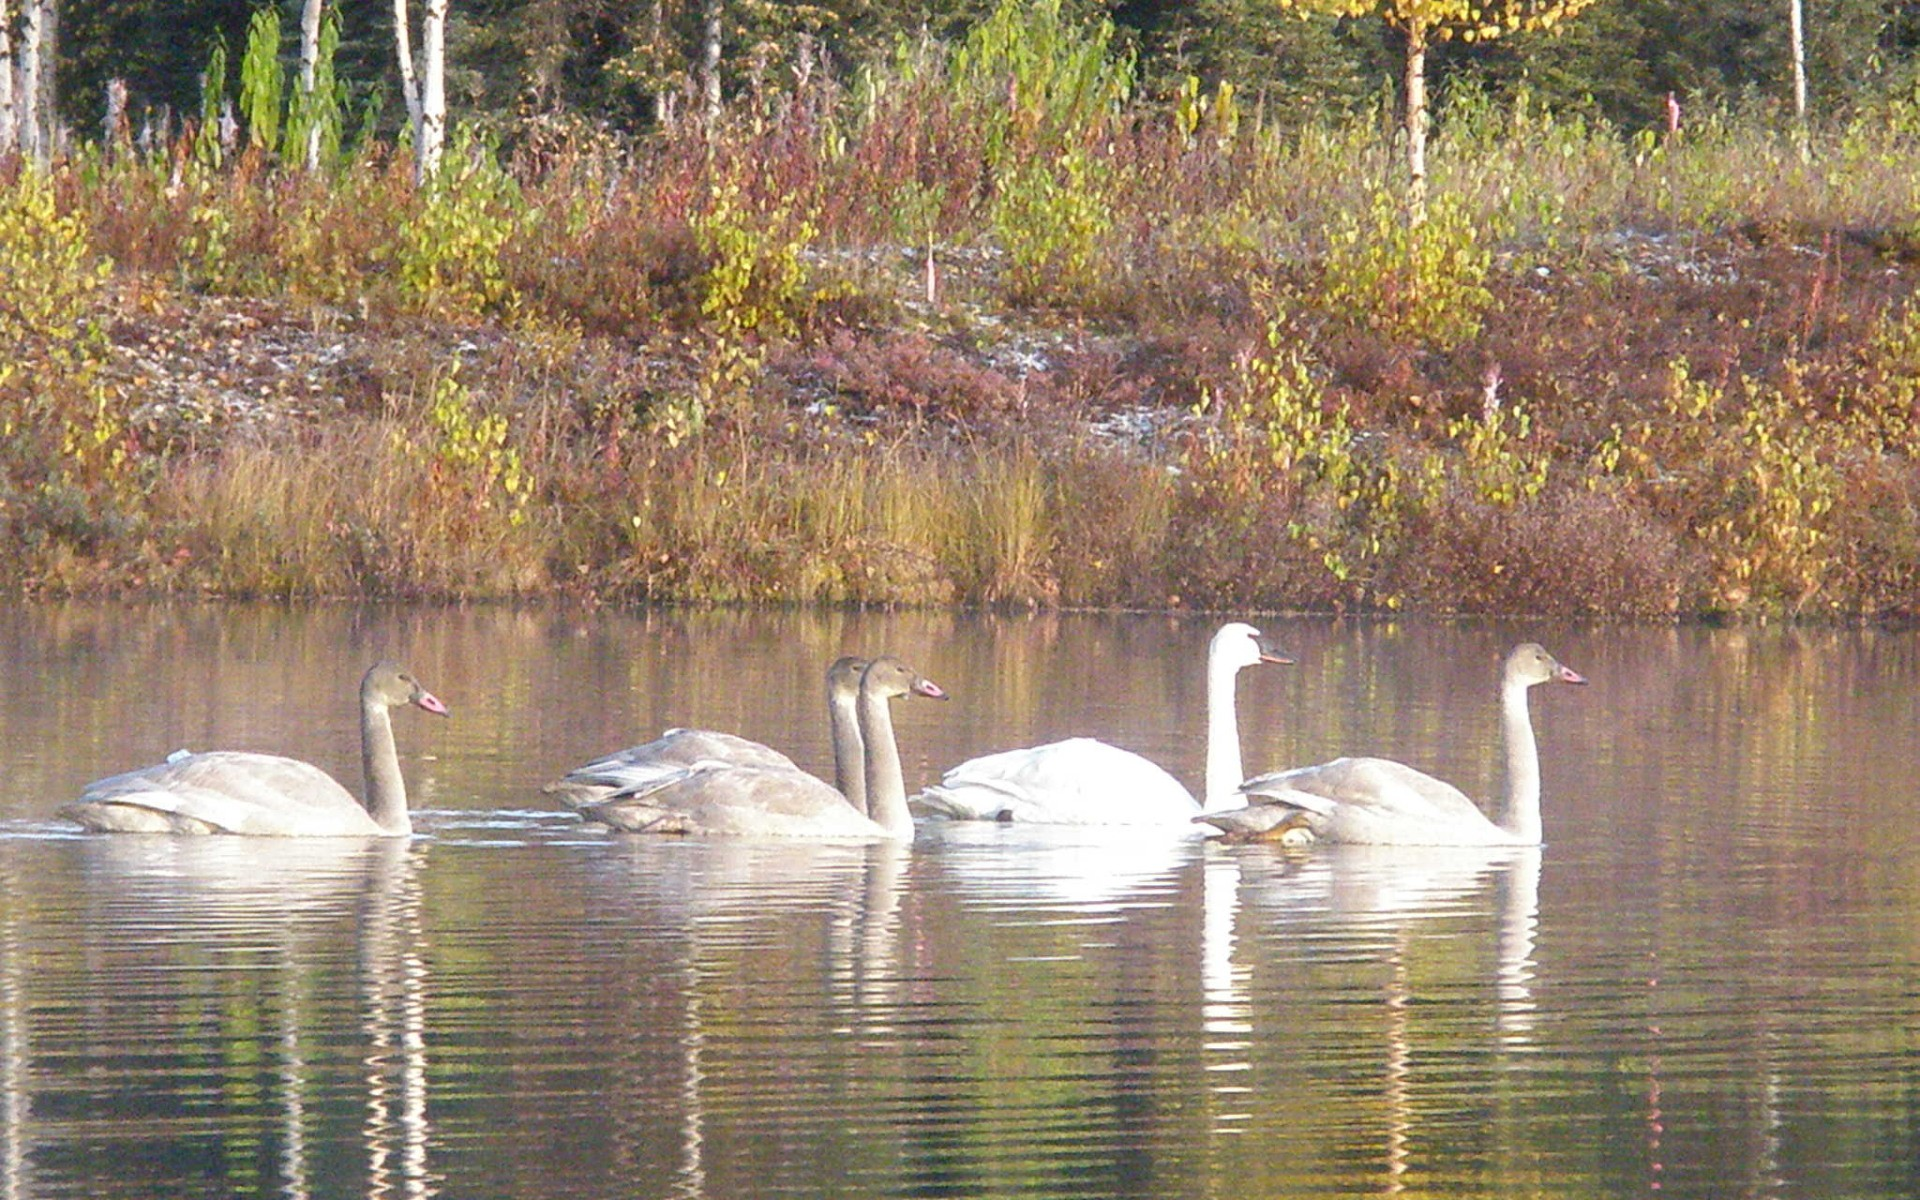 Swans on Lobster lake